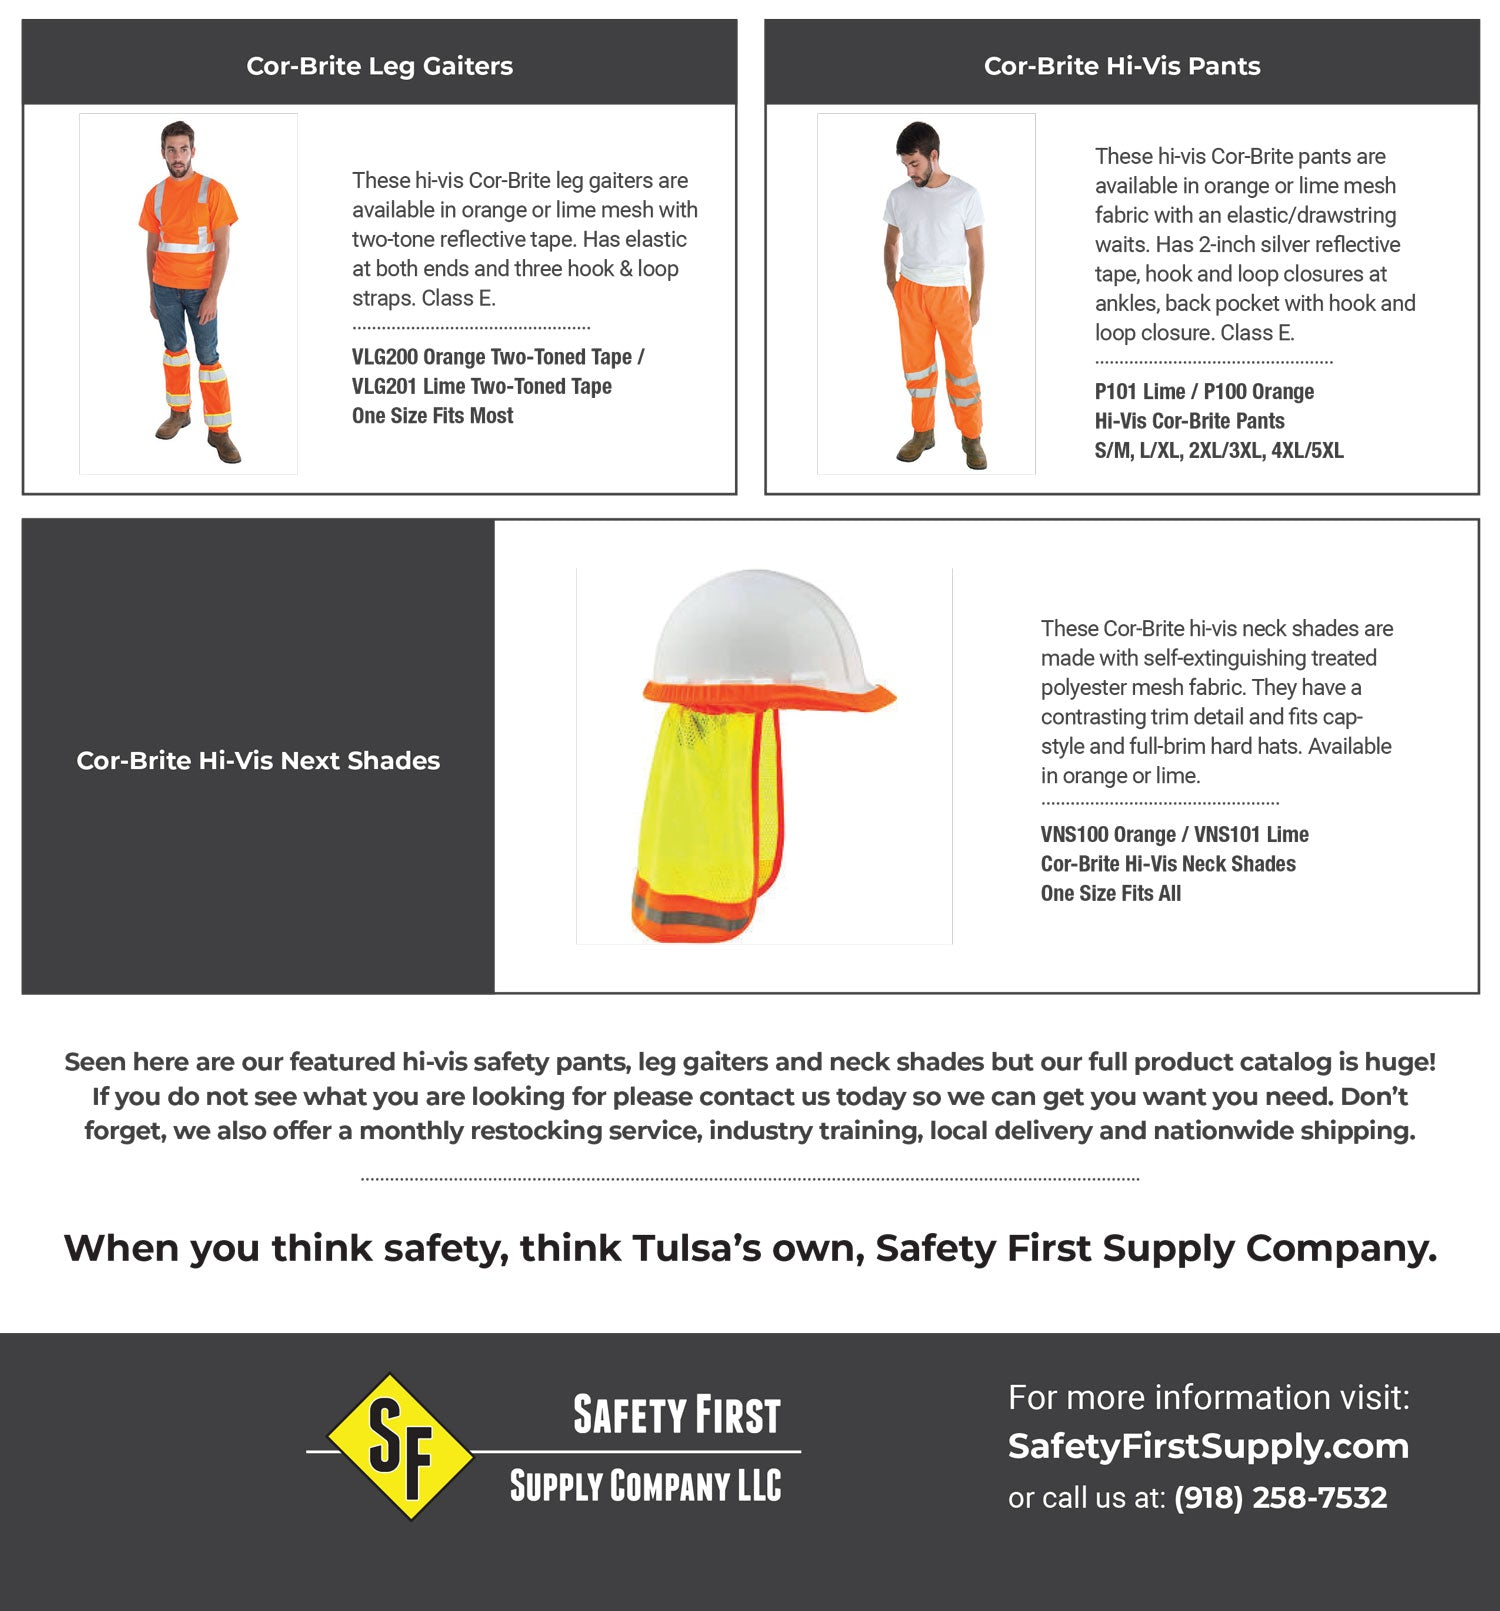 Hi-Vis Safety Pants - Tulsa